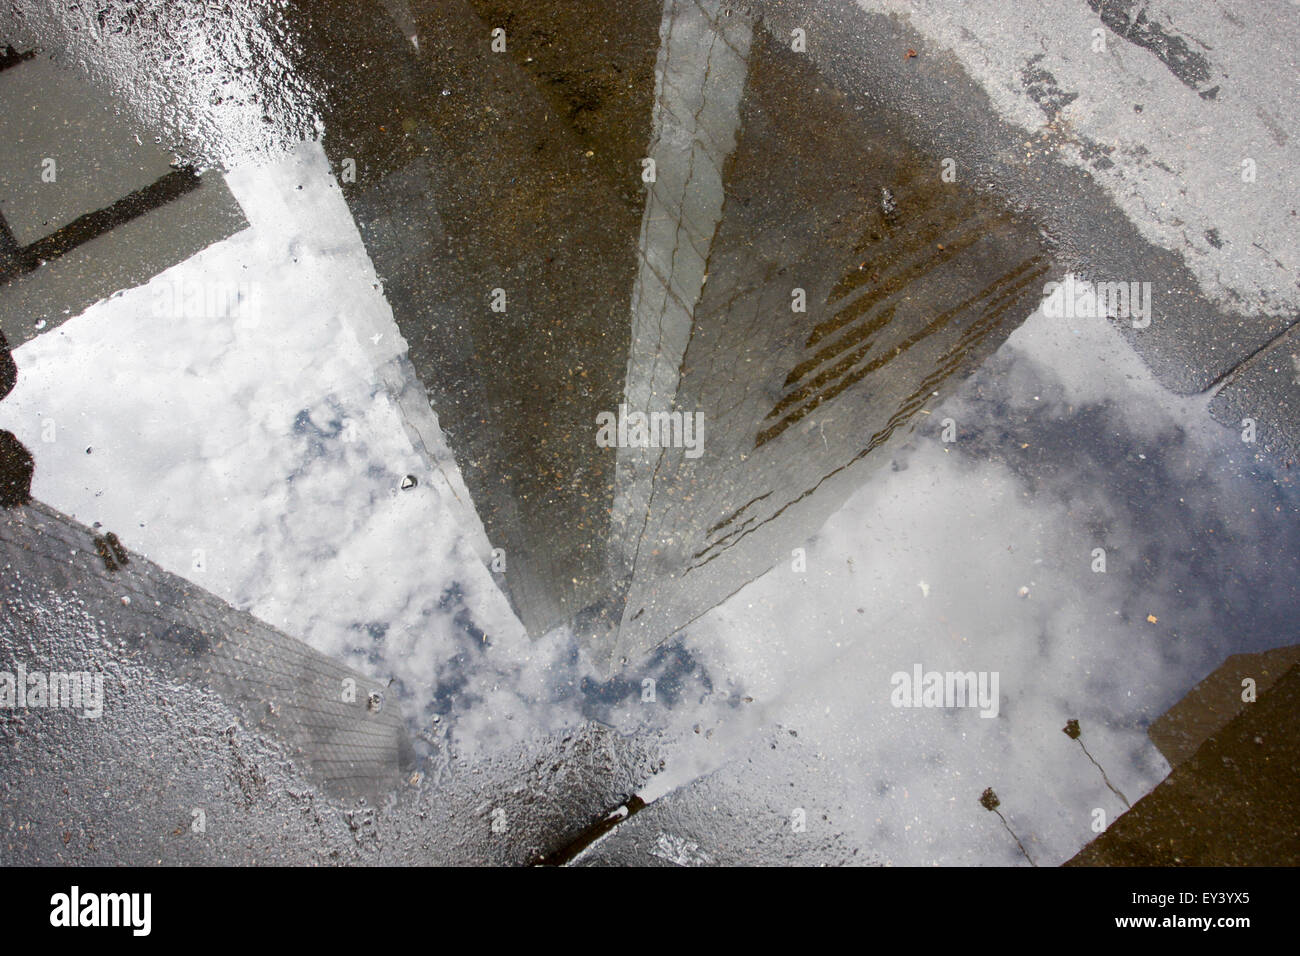 Manhattan skyscrapers reflecting in a rain puddle on the sidewalk. - Stock Image